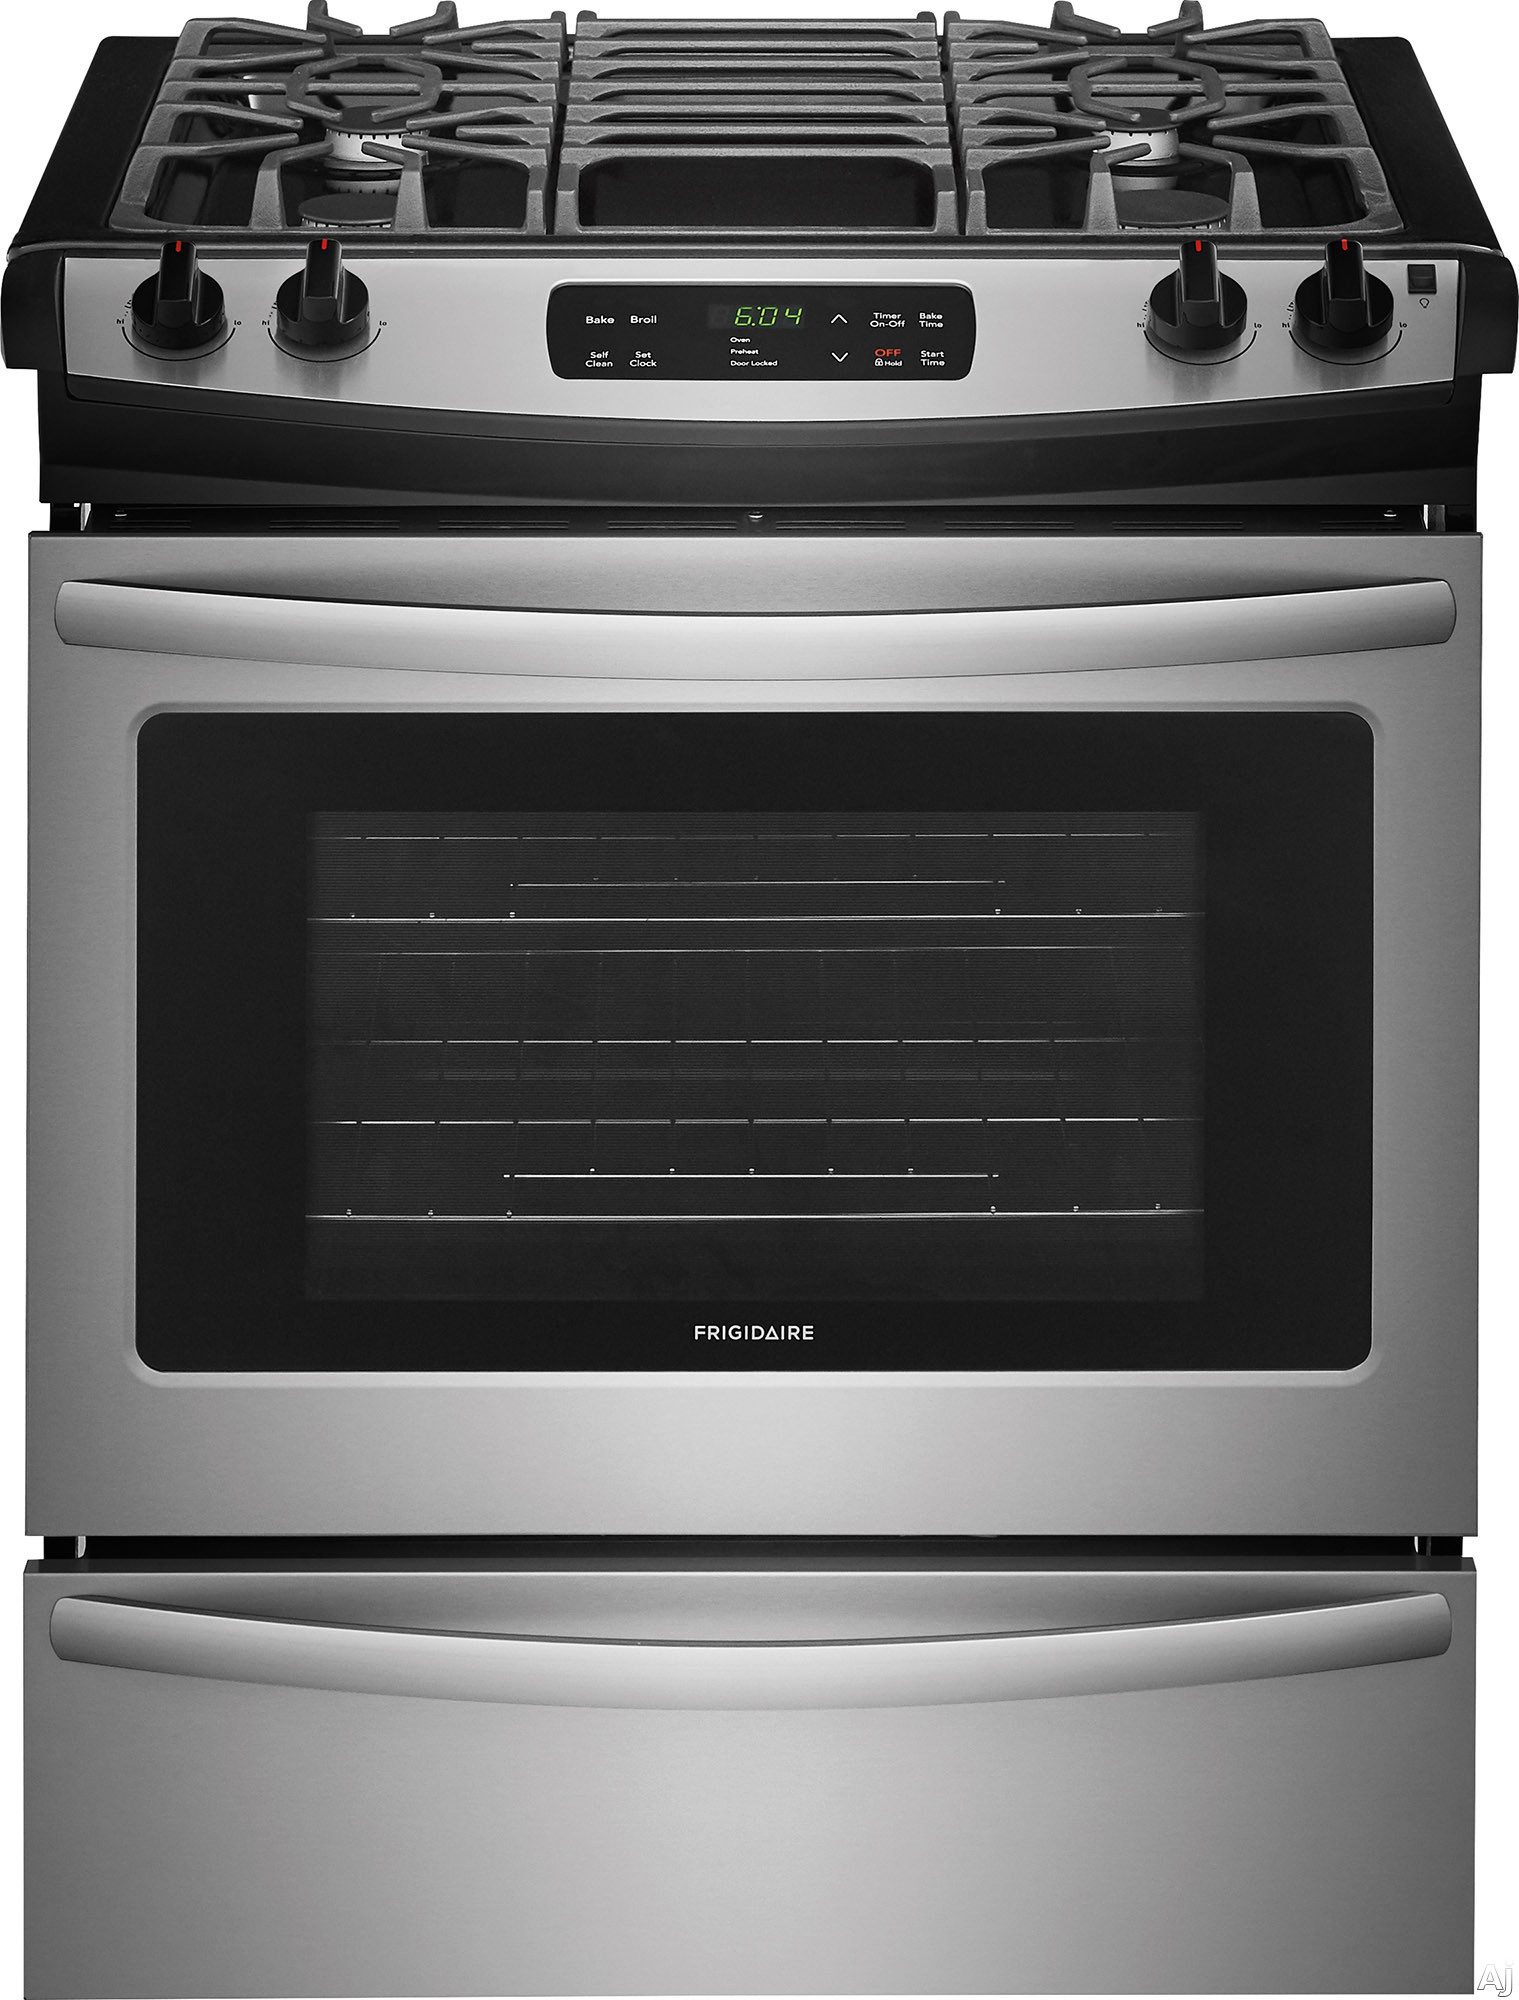 "Frigidaire FFGS3026TS 30 Inch Slide-In Gas Range with One-Touch Self Clean, Even Baking Technology, Continuous Grates, Store-Moreâ""¢ Storage Drawer, Oven Rack Handles, Delay Start Baking and 4.5 c"